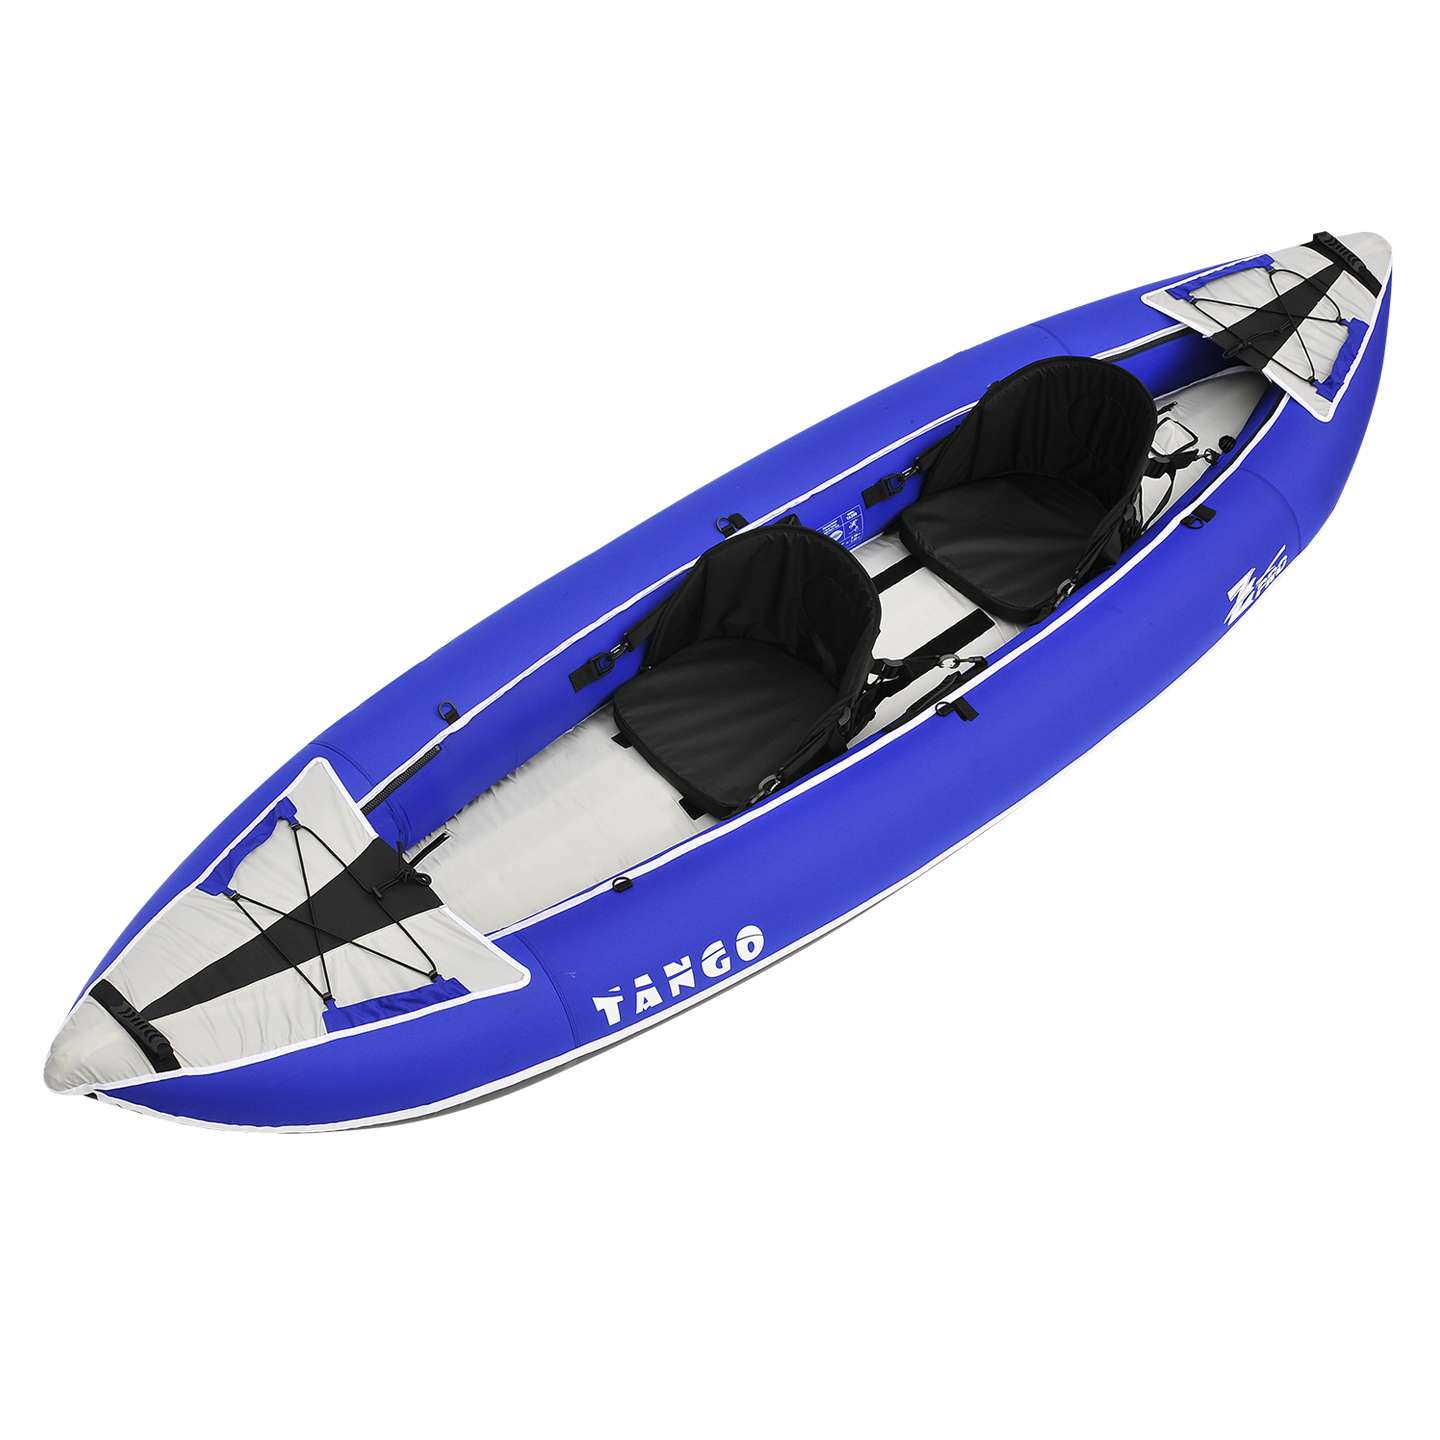 Details about Z-Pro Tango 2 Inflatable Kayak Blue - 1 or 2 Person Kayak